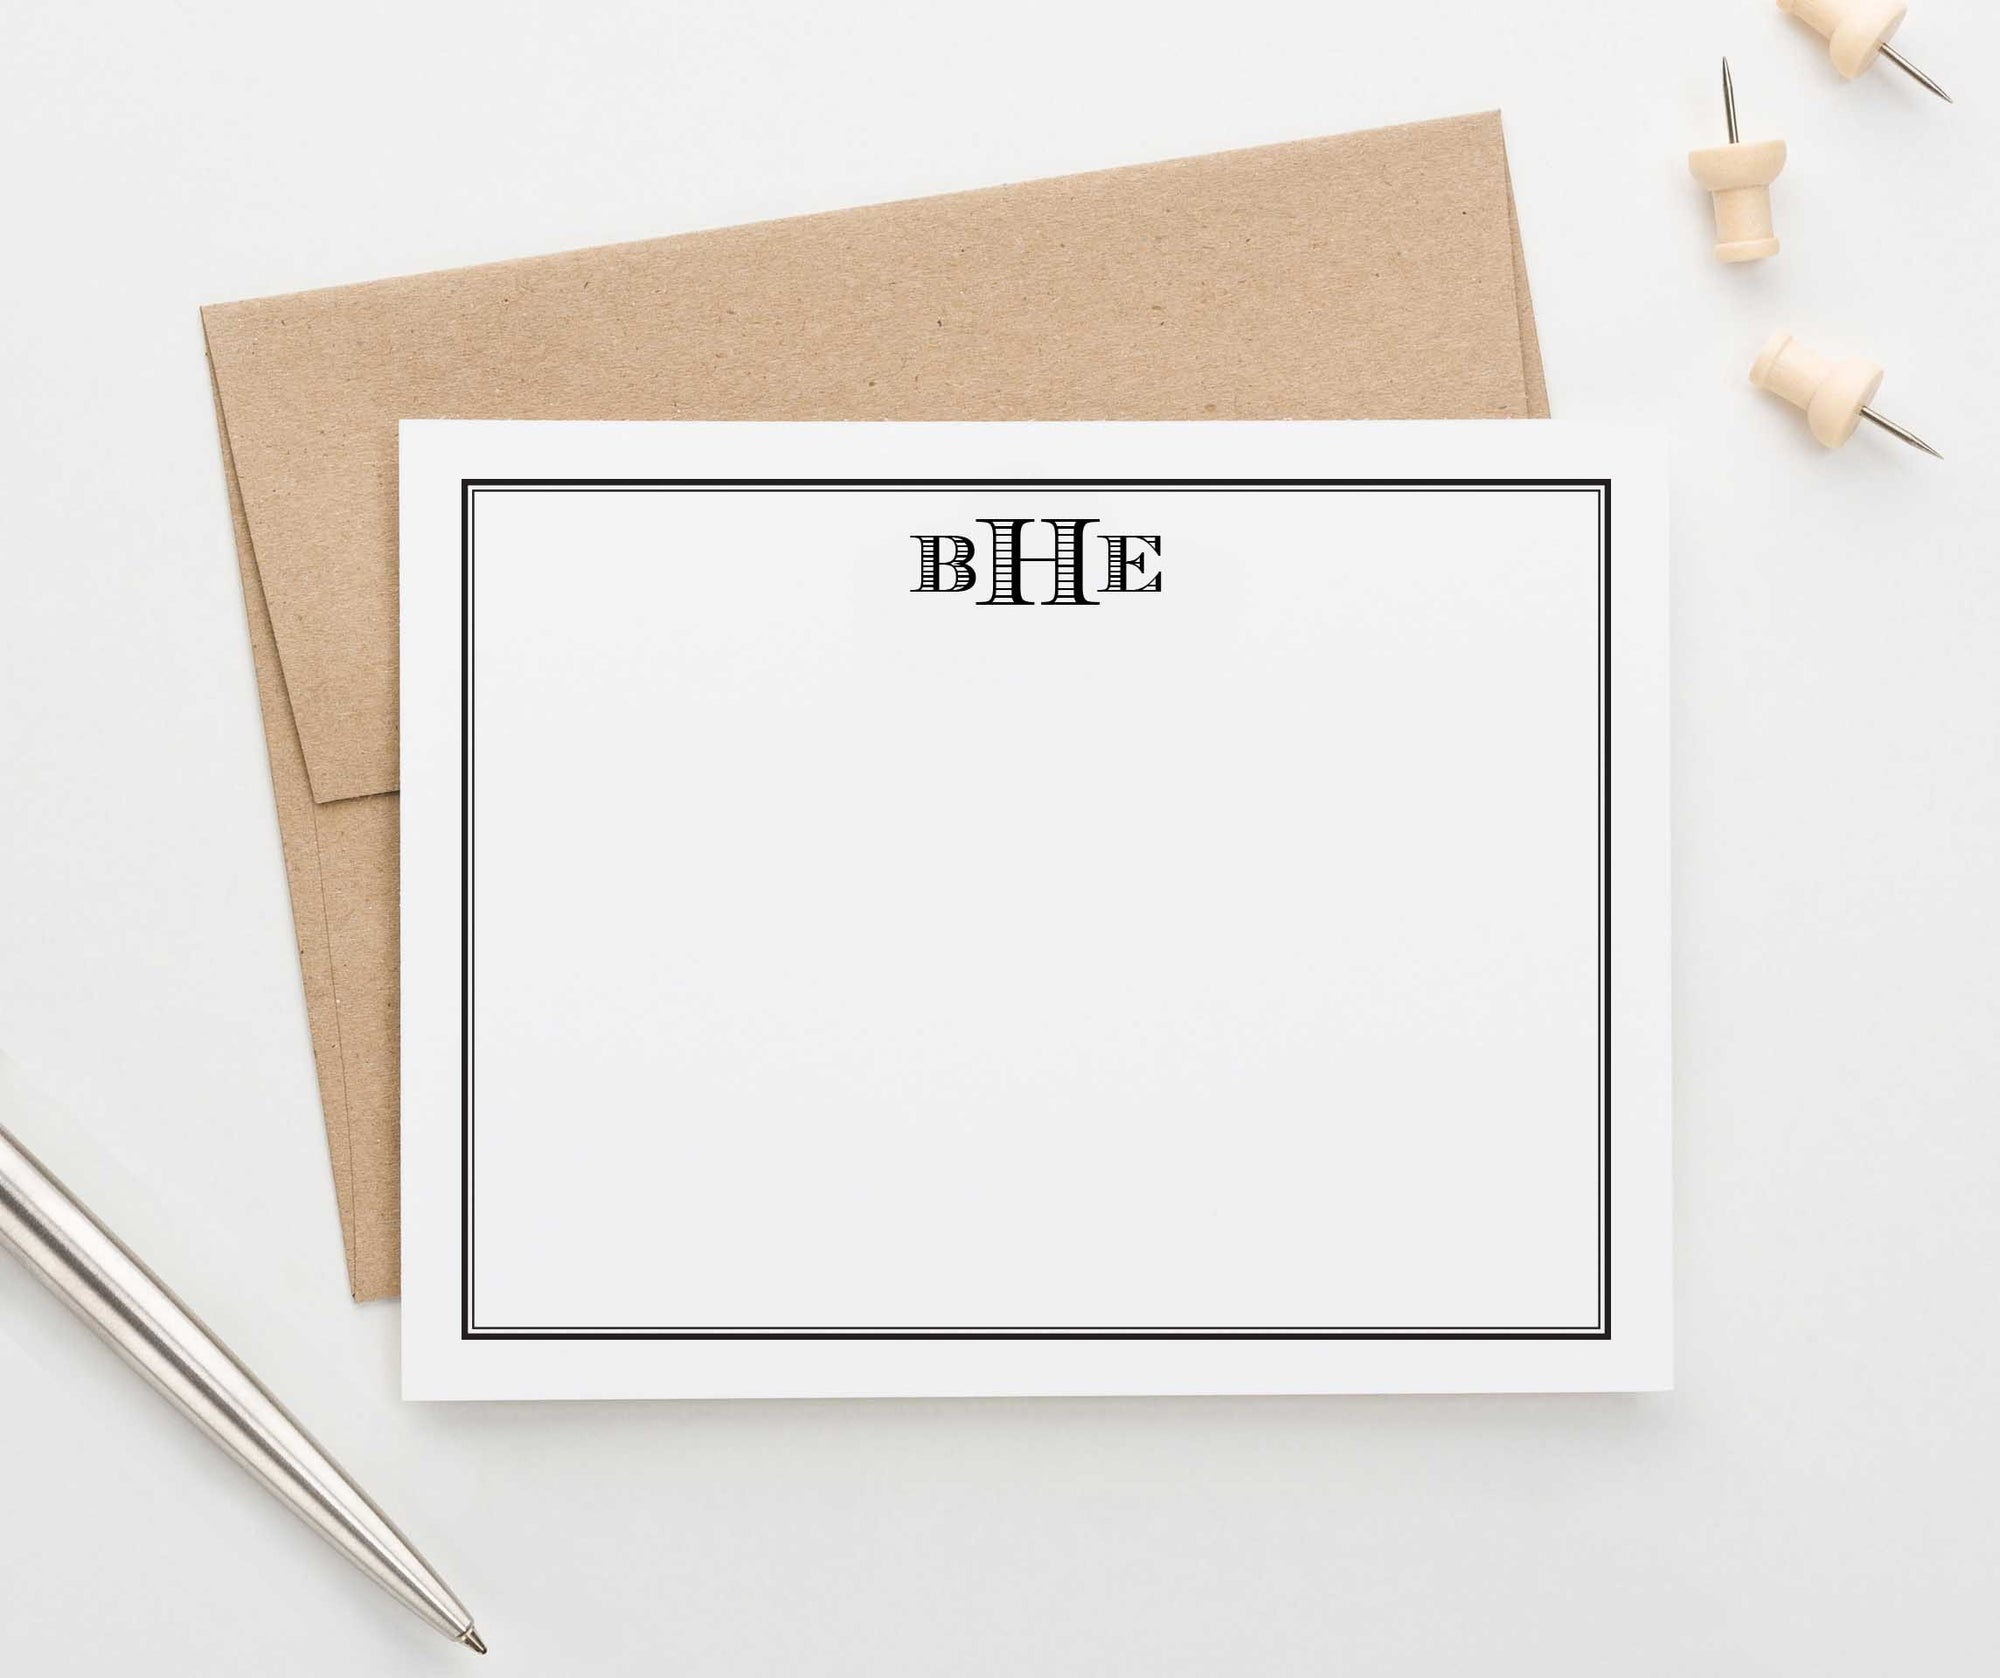 MS039 perosnalized borderd monogrammed stationery sets 3 letter men professional business